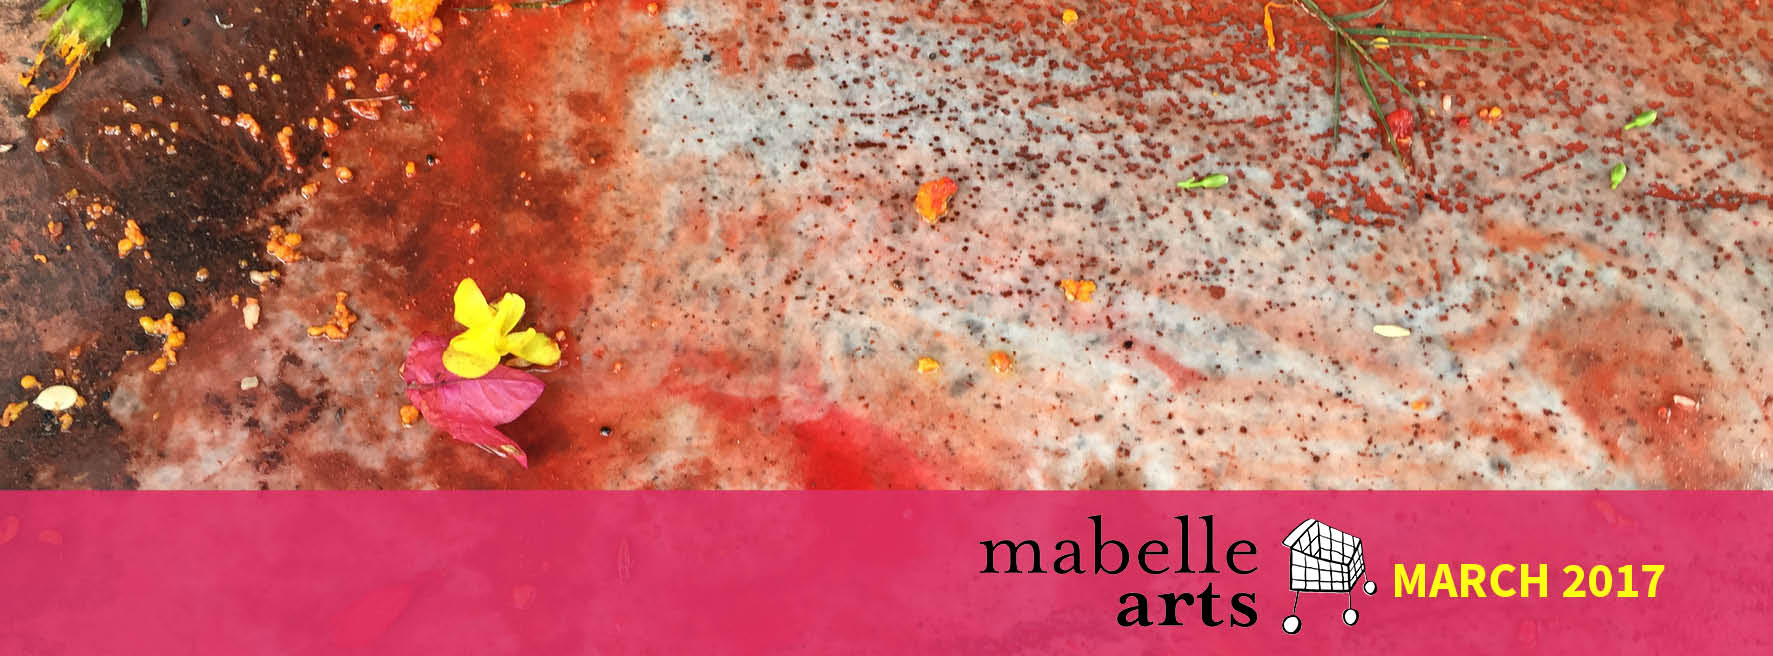 Mabelle Arts March Banner